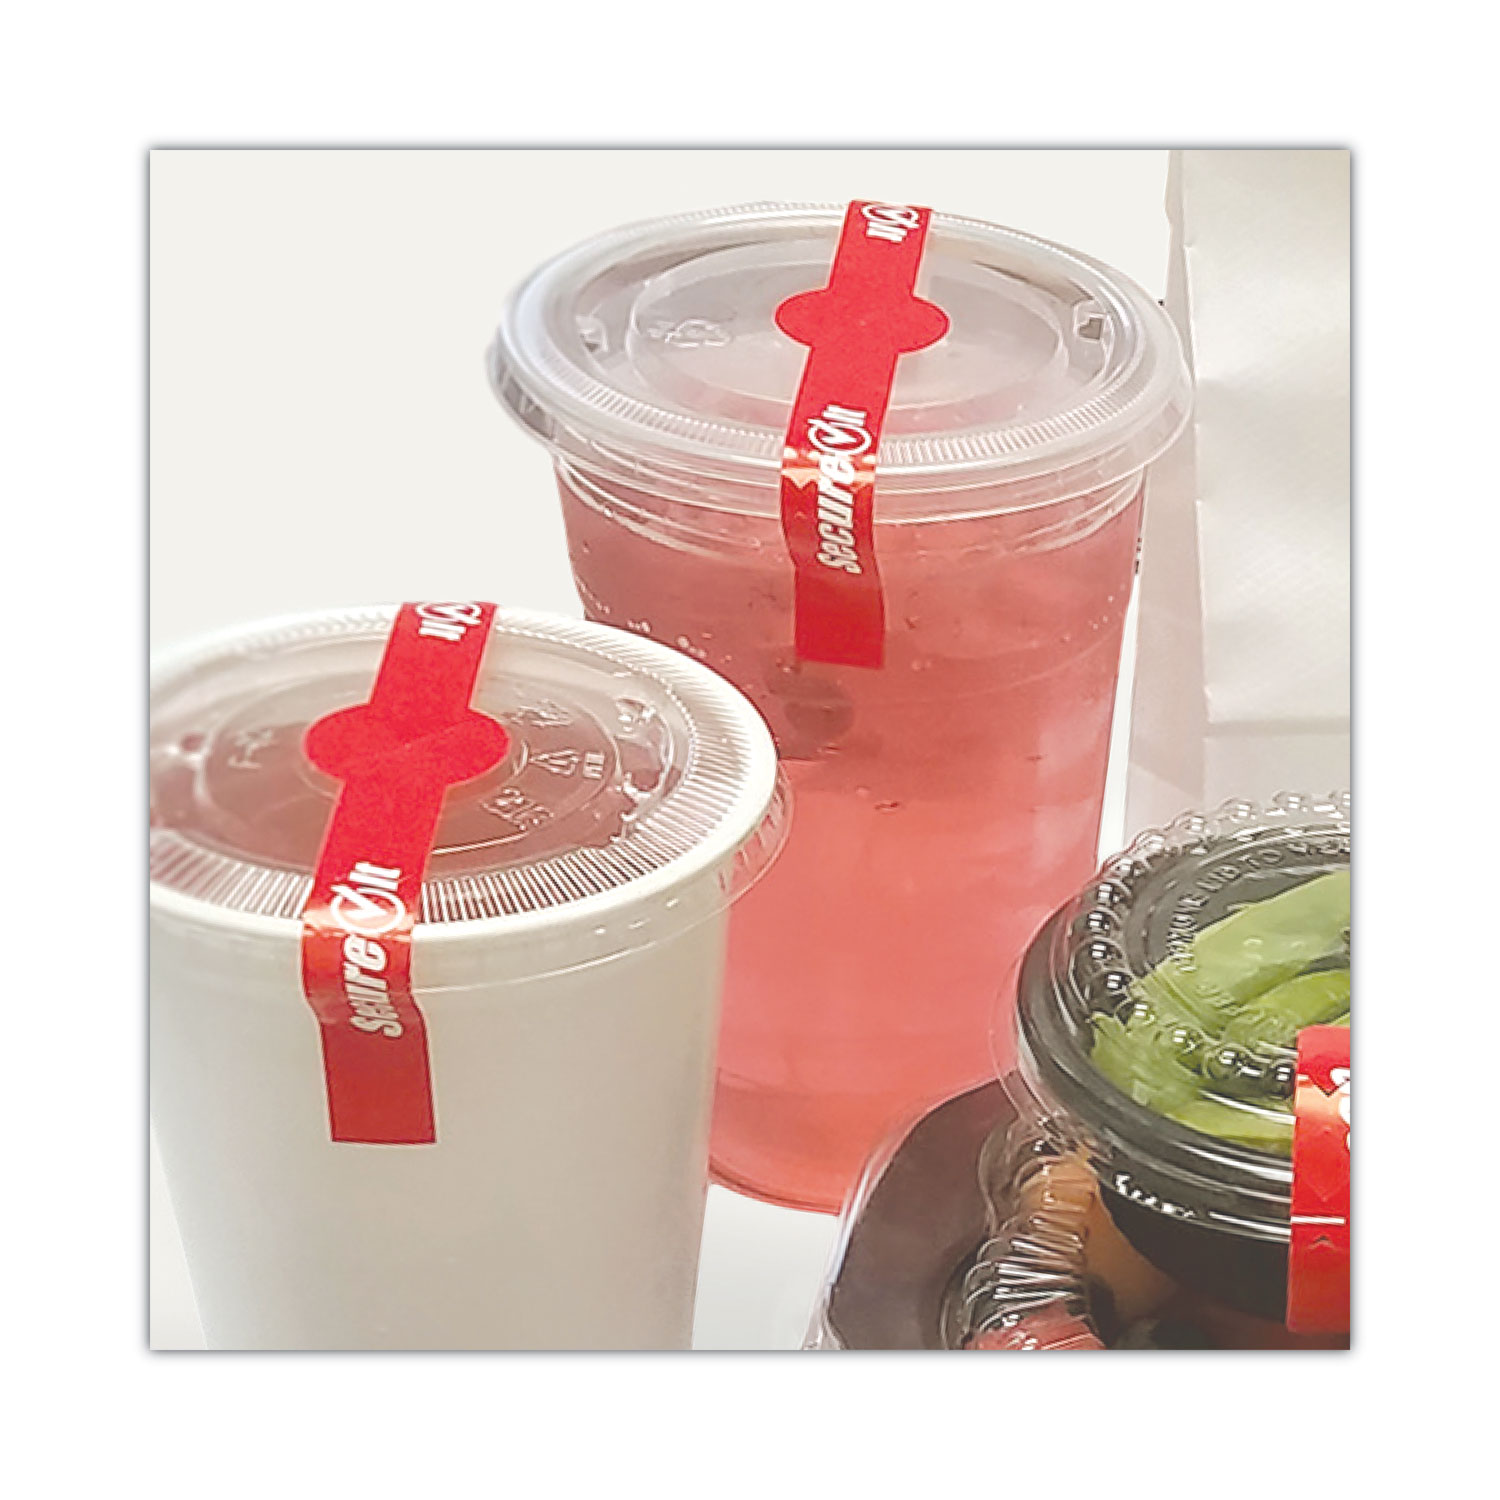 National Checking Company™ SecureIT Tamper Evident Drink Lid Seal, Secure It, 1 x 7, Red, 250/Roll, 2 Rolls/Pack